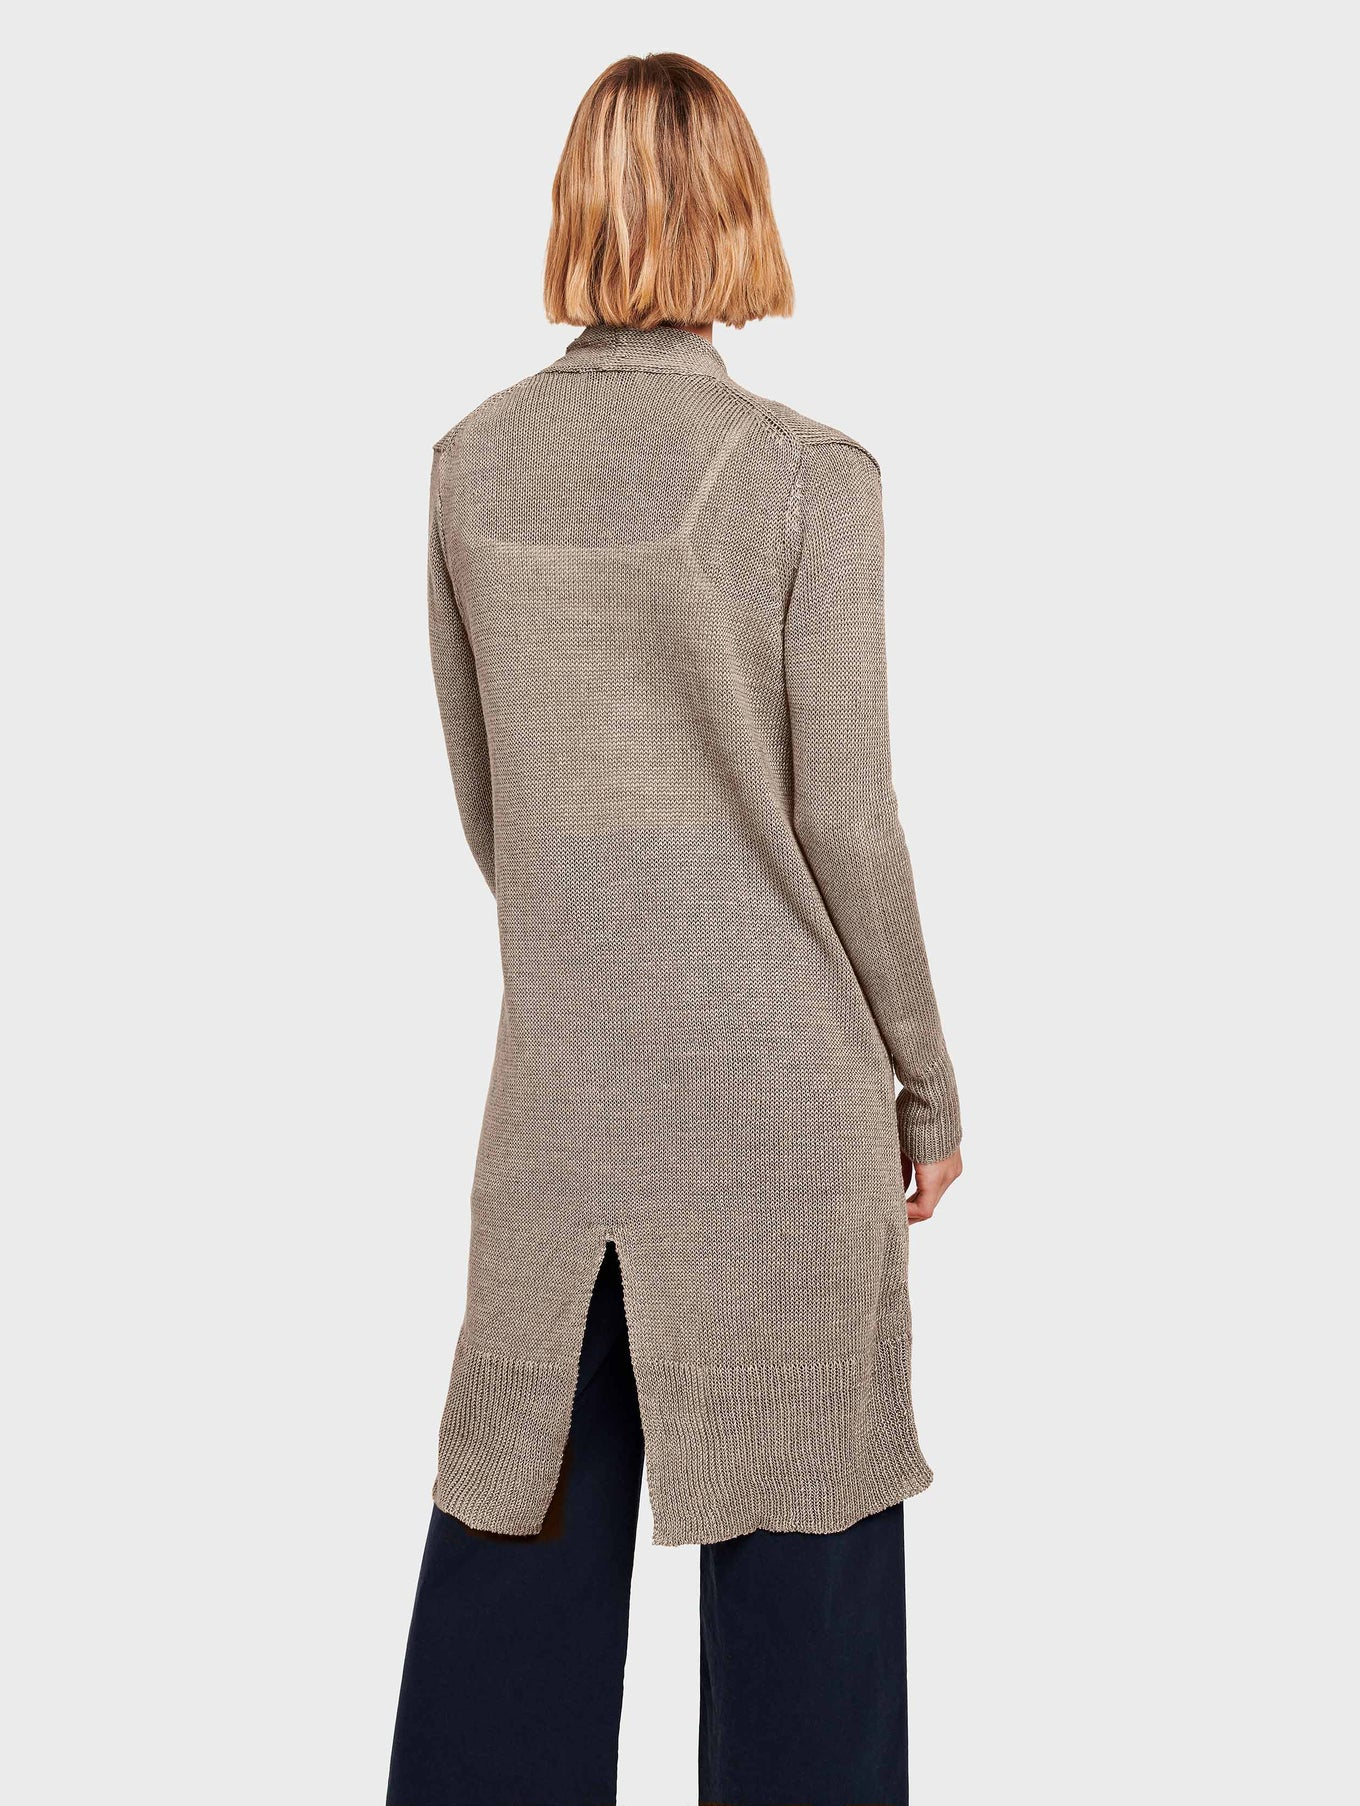 Corded Linen Long Open Cardigan - Taupe Heather - Image 3